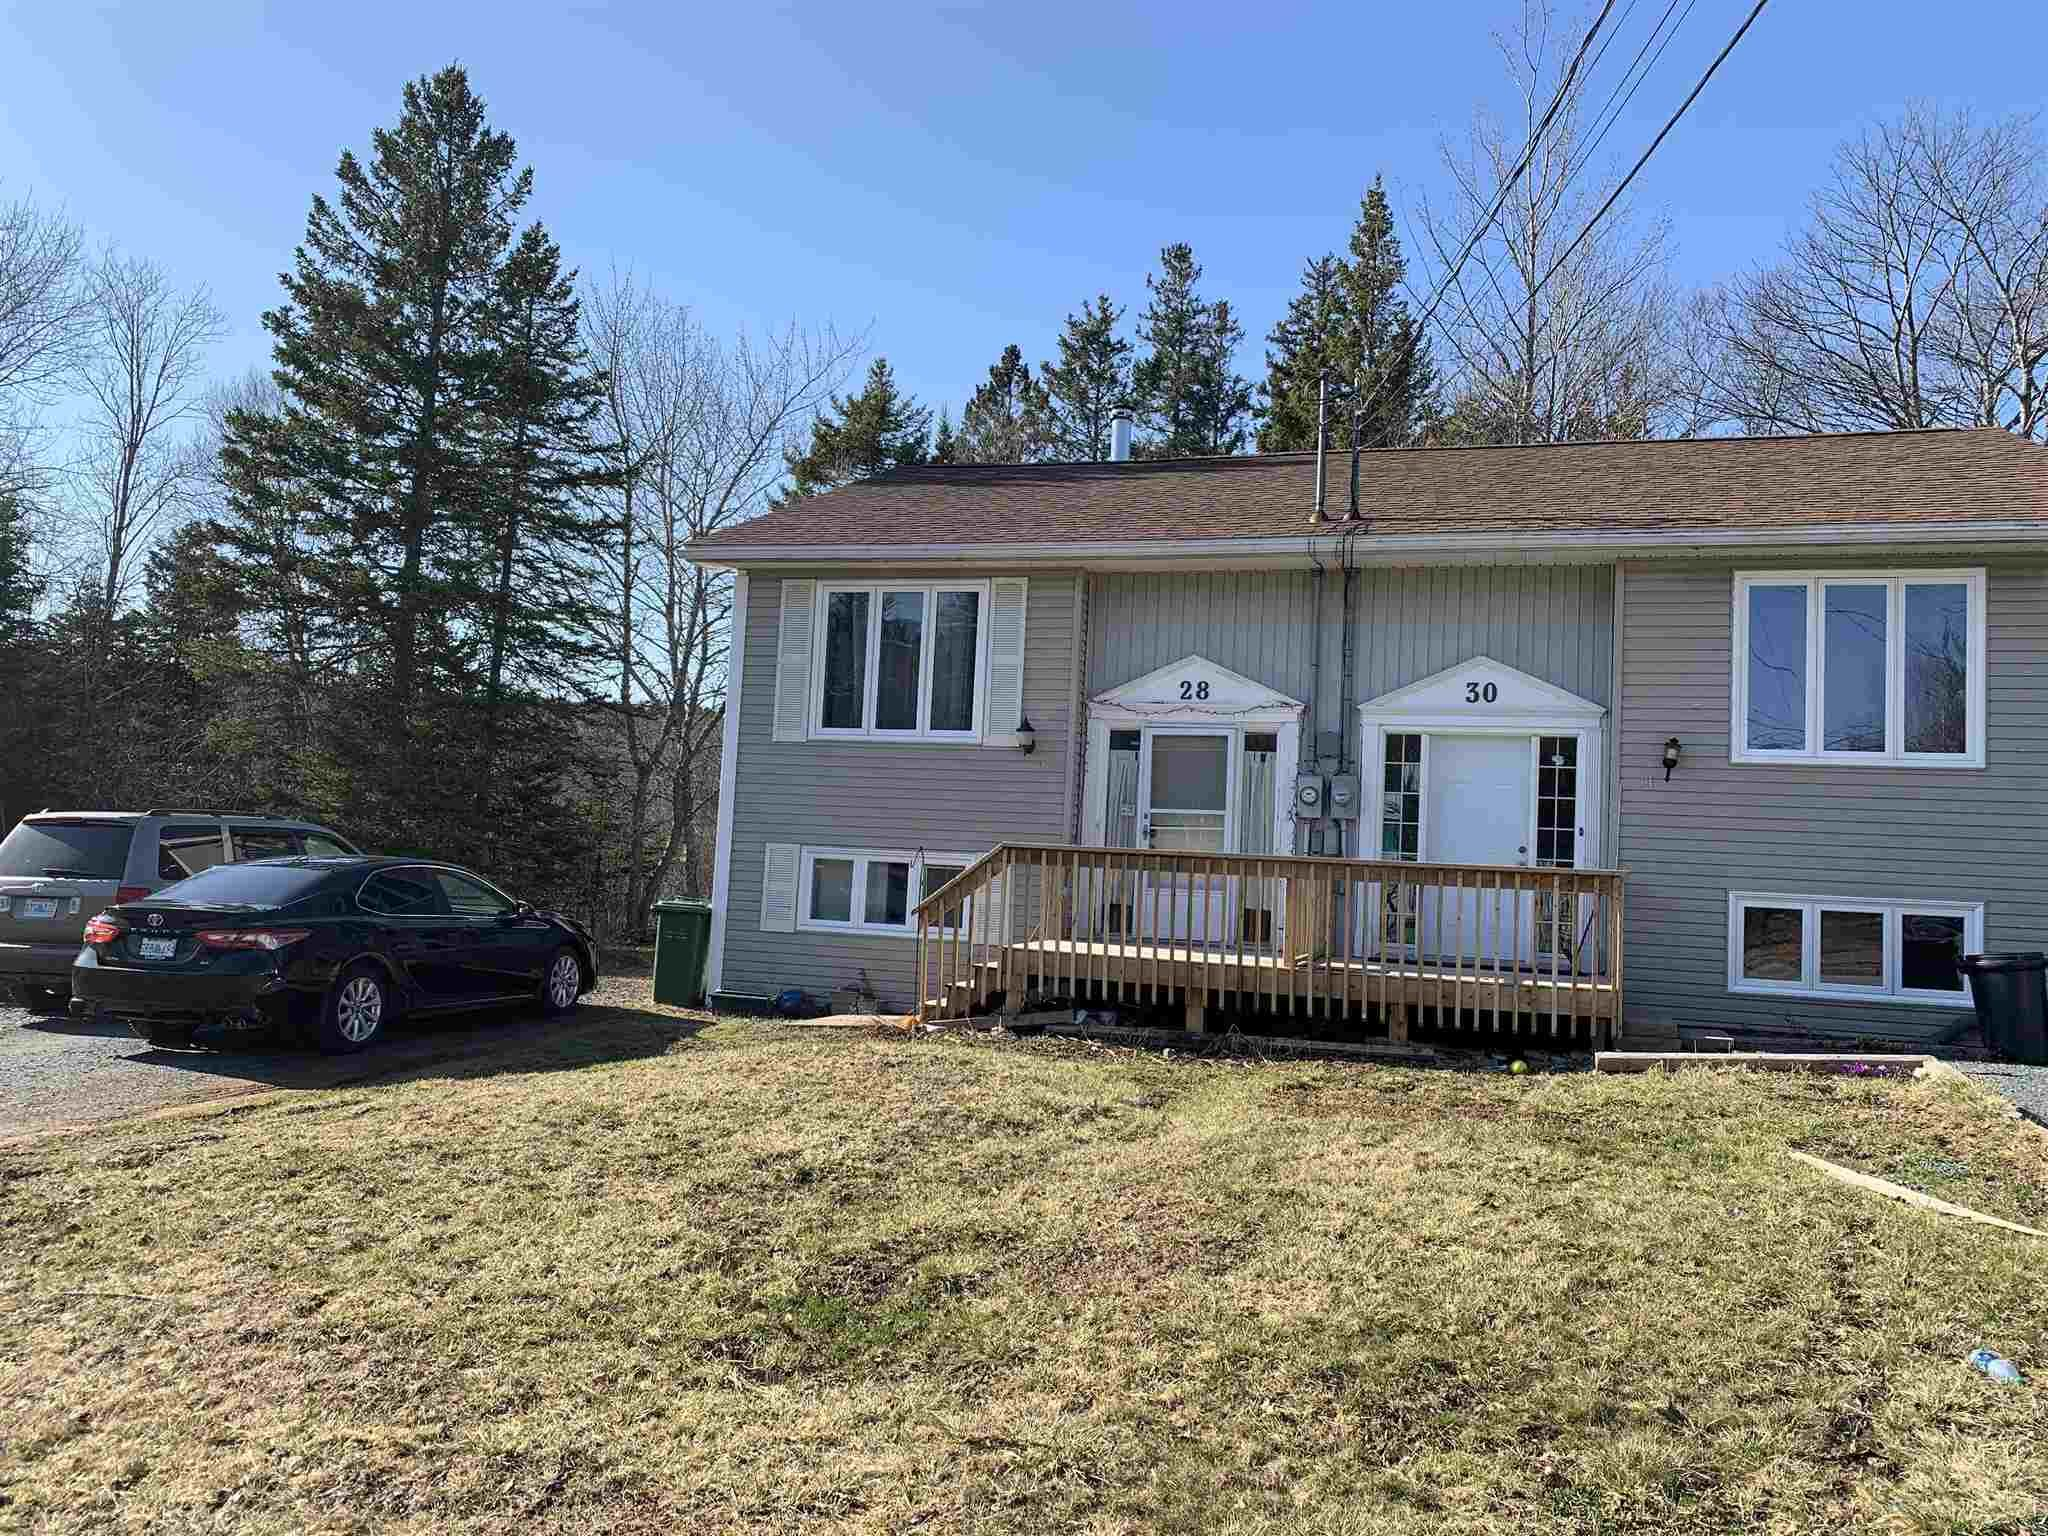 Main Photo: 28 Highrigger Crescent in Middle Sackville: 25-Sackville Residential for sale (Halifax-Dartmouth)  : MLS®# 202106926